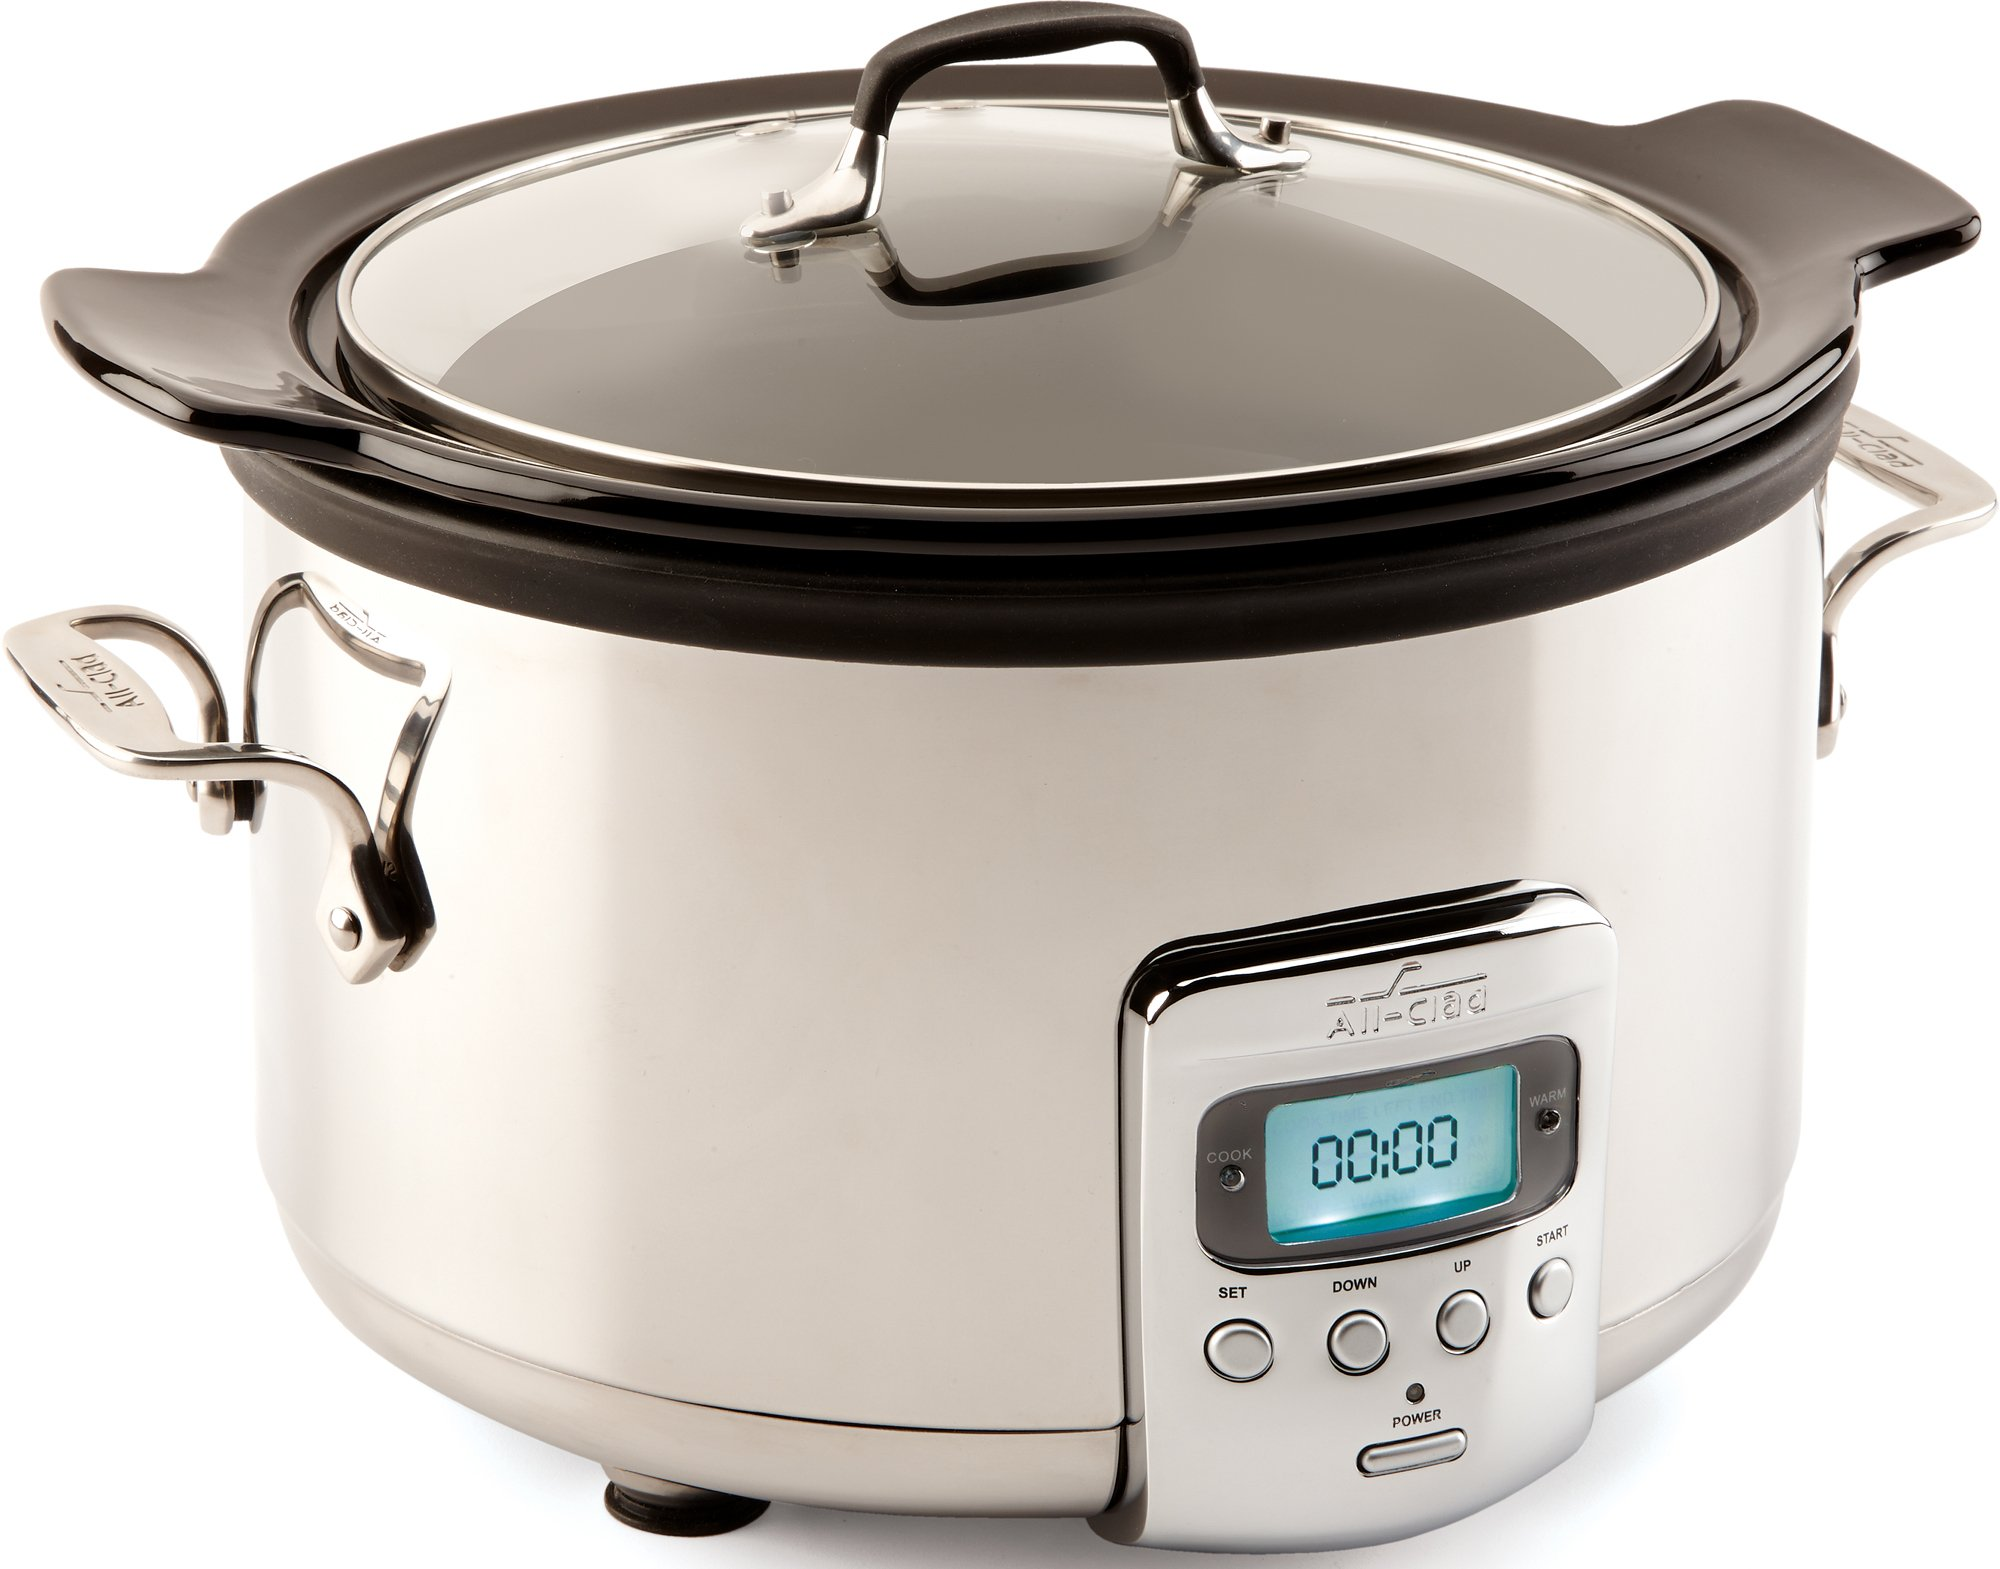 All-Clad Sd710851 Slow Cooker With Black Ceramic Insert And Glass Lid 4-Quart.. 8